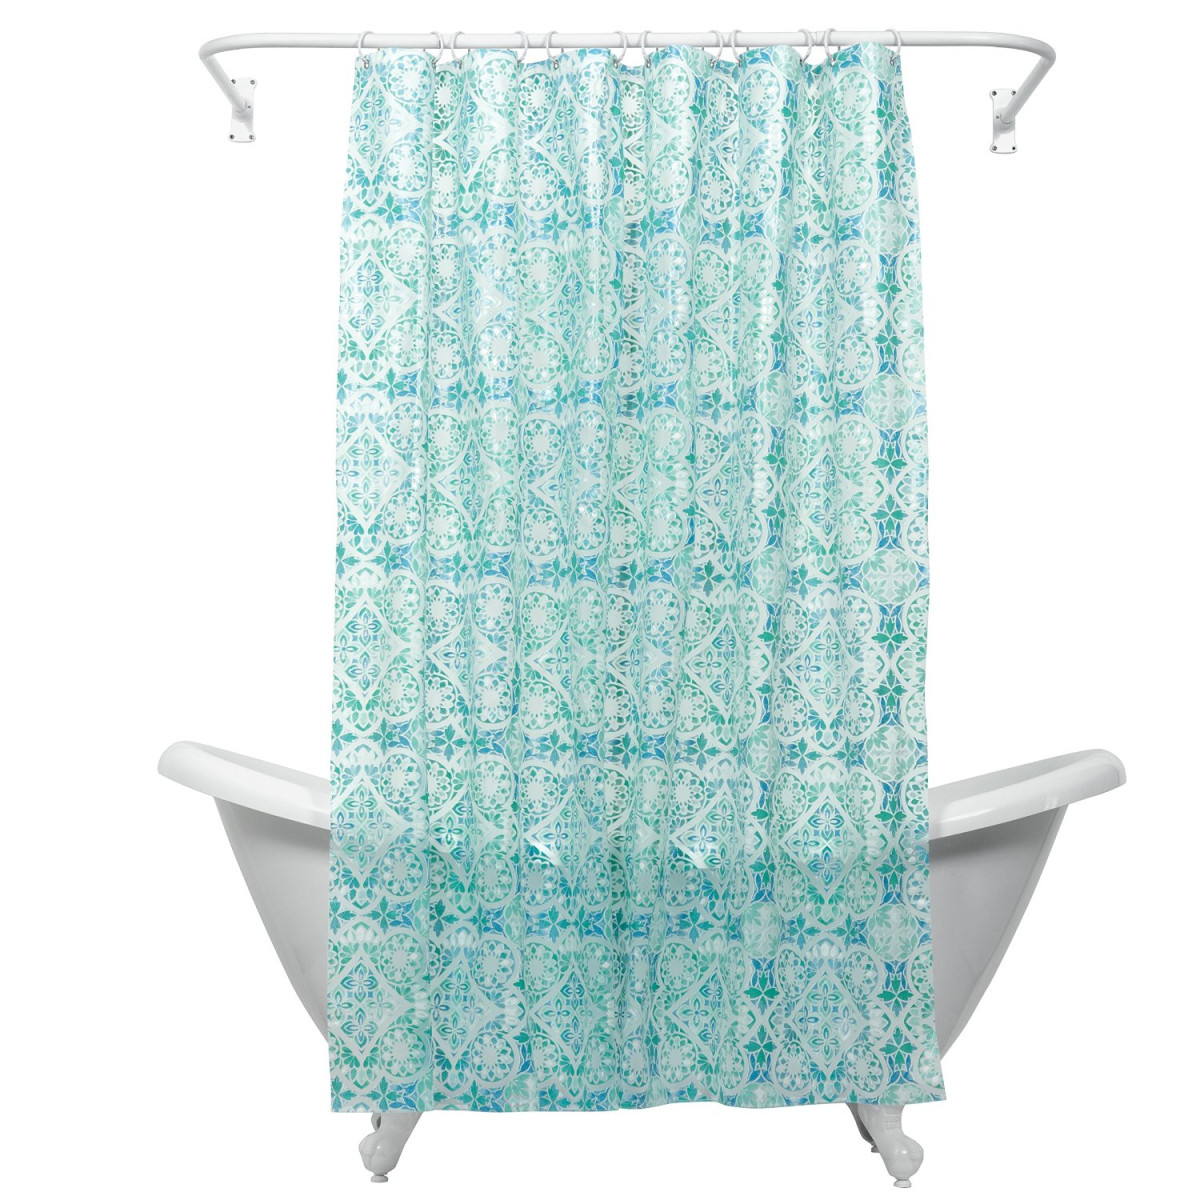 ZPC Zenith Products Zenna Home India Ink Morocco Peva Shower Curtain Liner Teal Corporation 146194023Z For Christmas